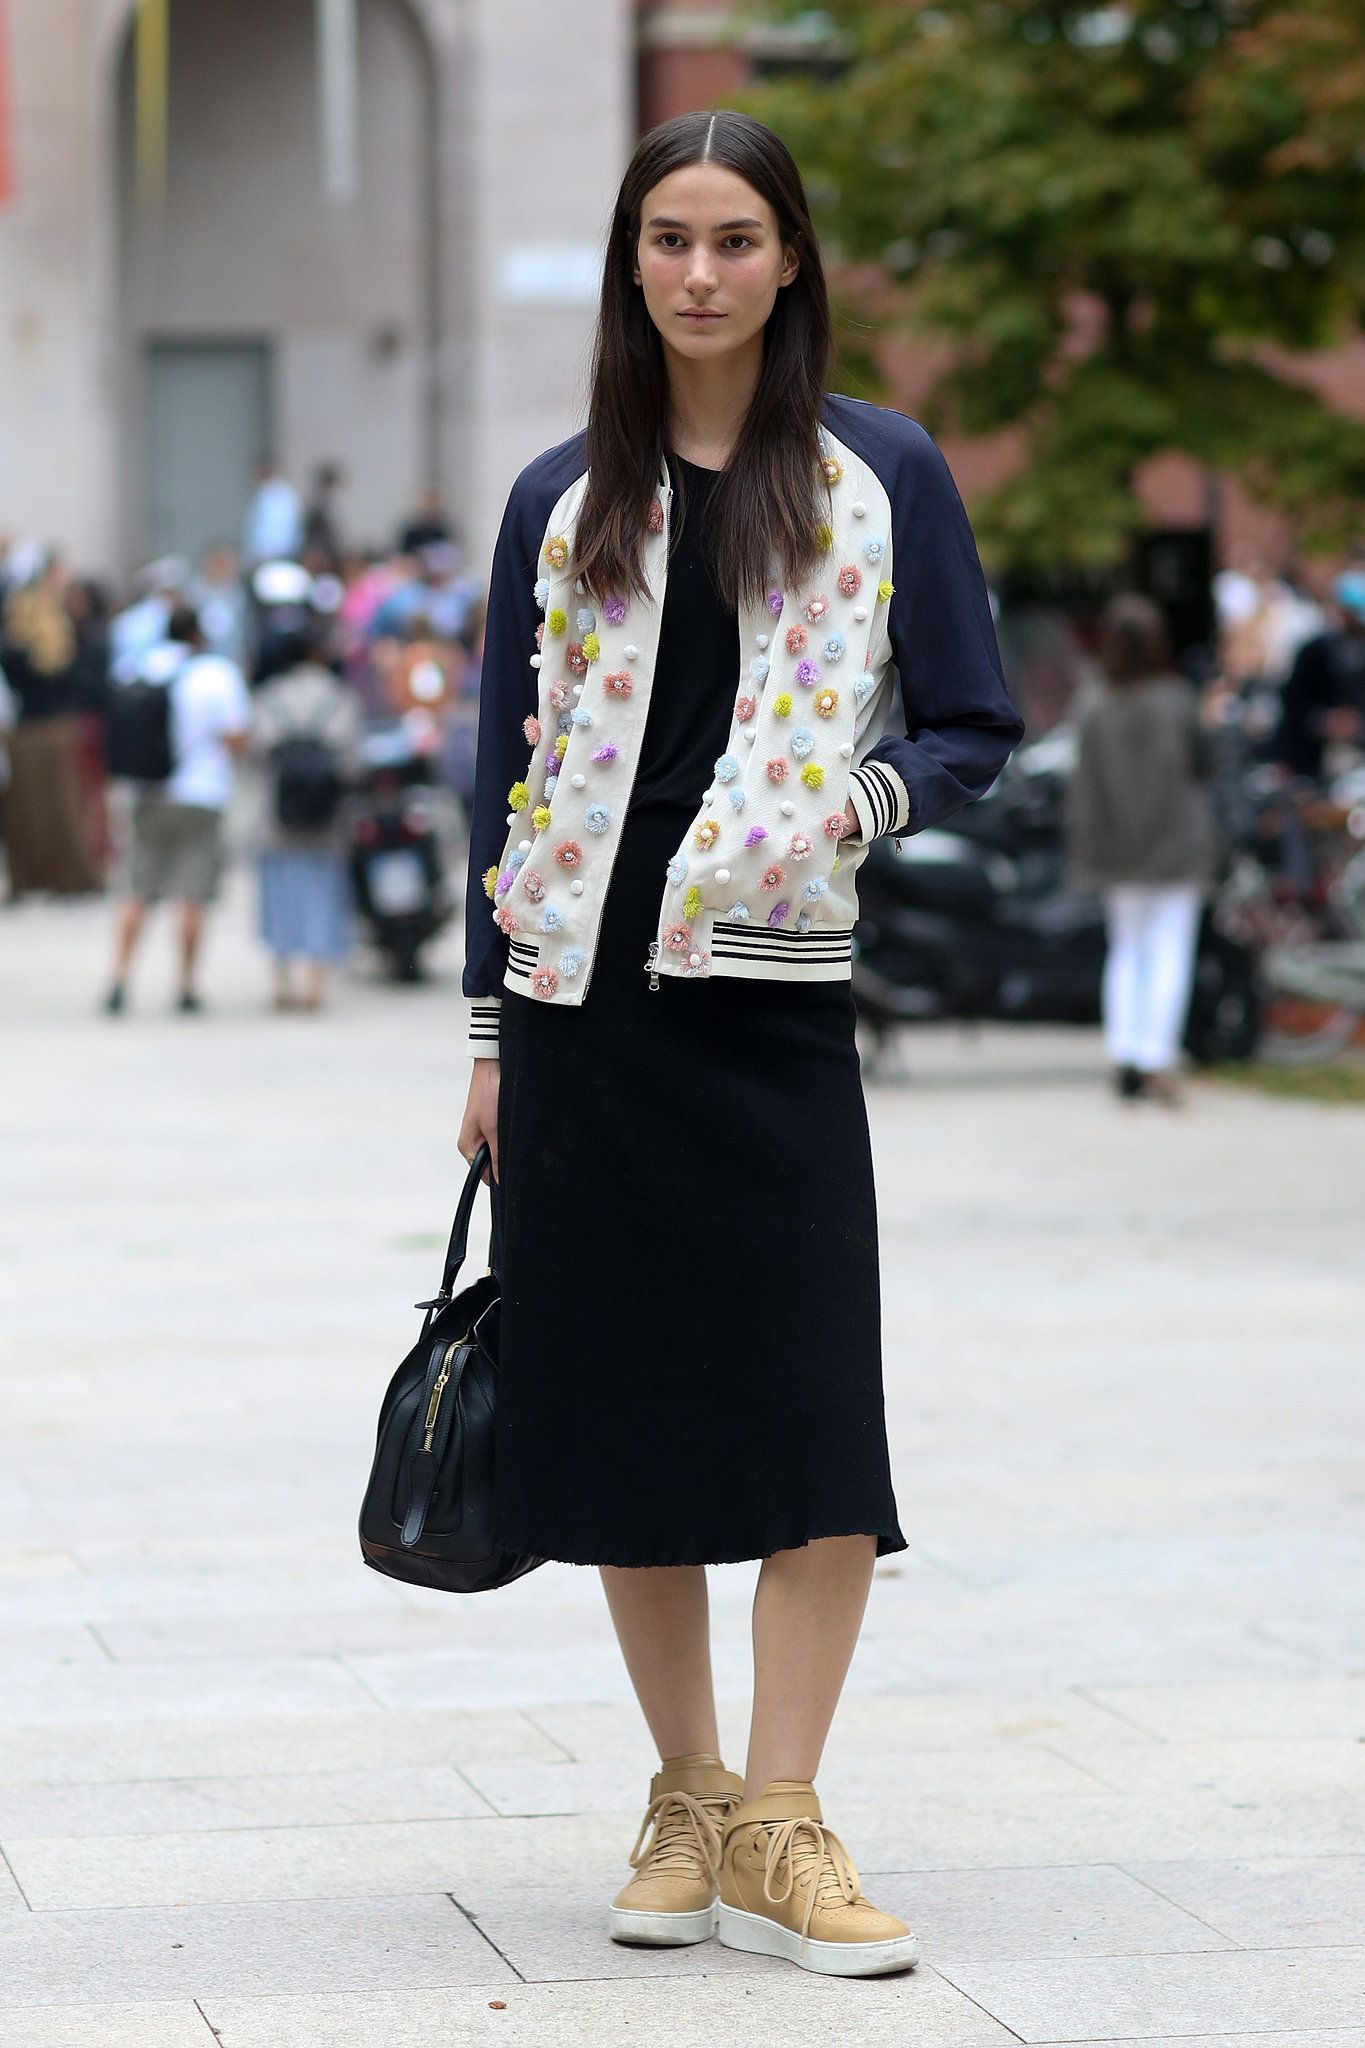 Milan Fashion Week: An embellished bomber looks totally cool with neutral sneakers.